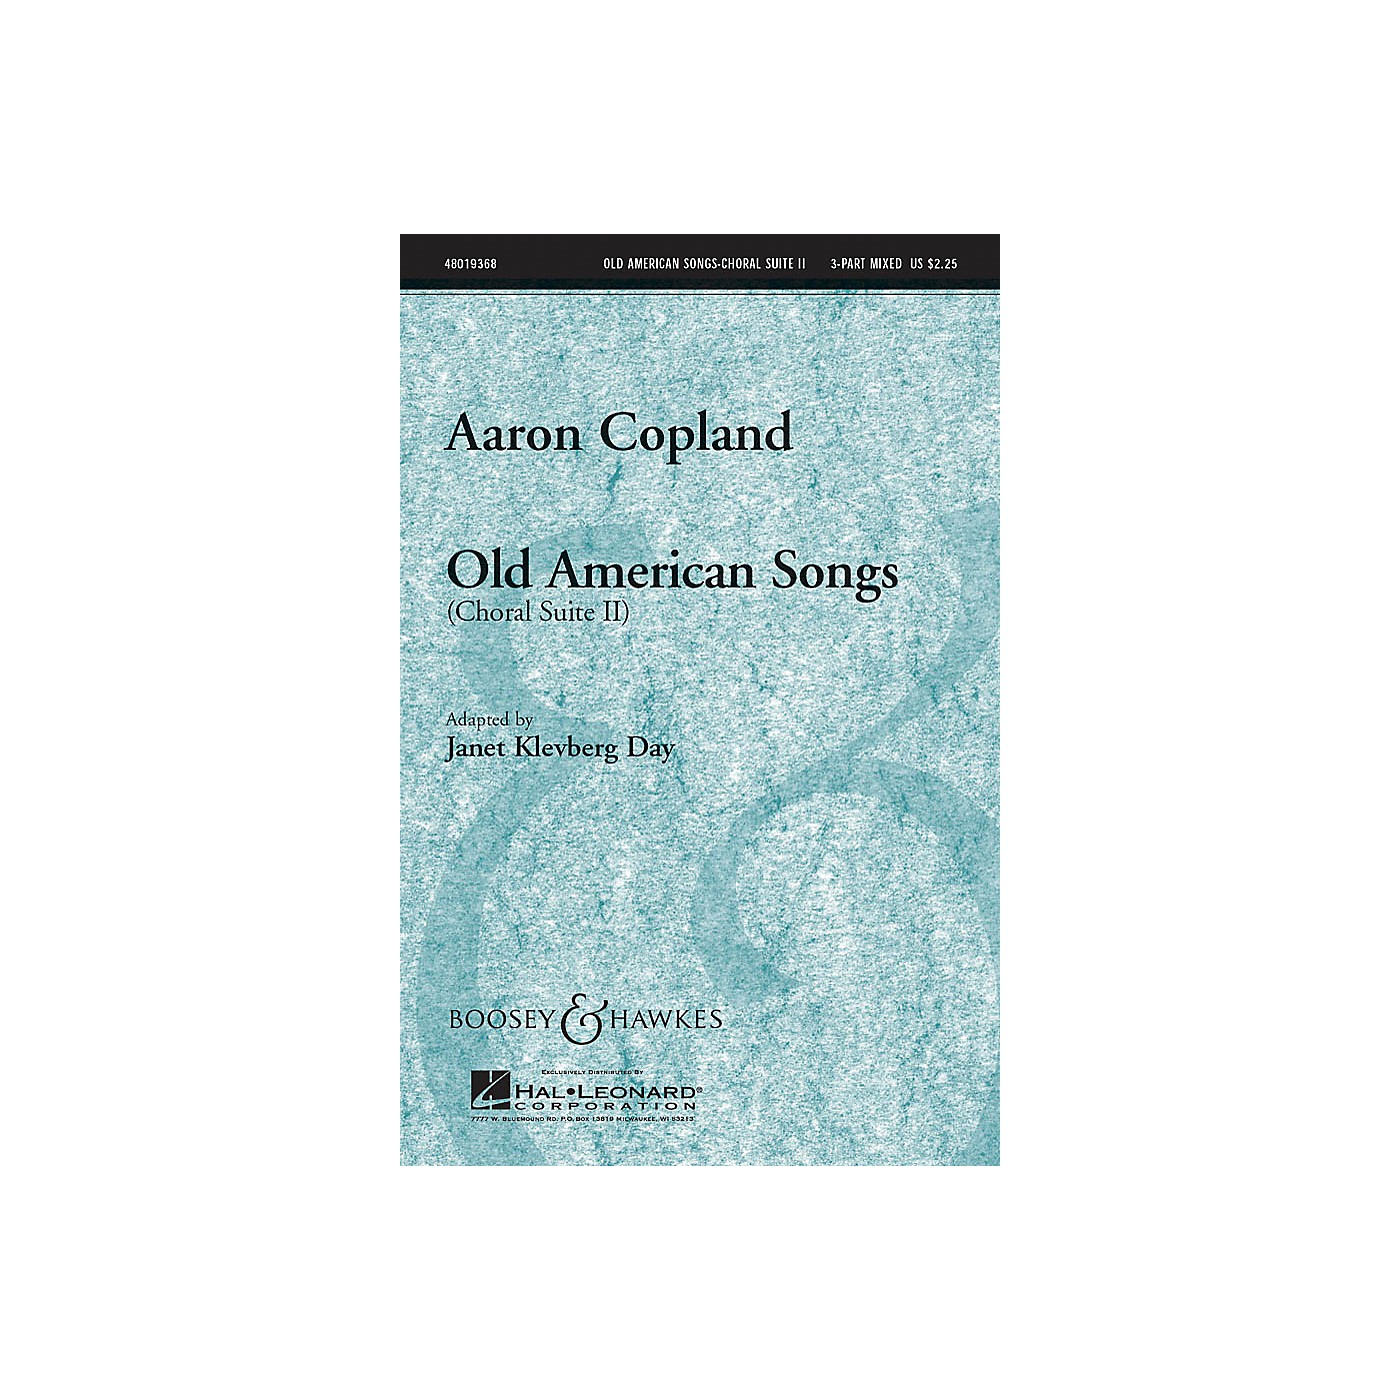 Boosey and Hawkes Old American Songs (Choral Suite II) 3-Part Mixed by Aaron Copland arranged by Janet Klevberg Day thumbnail